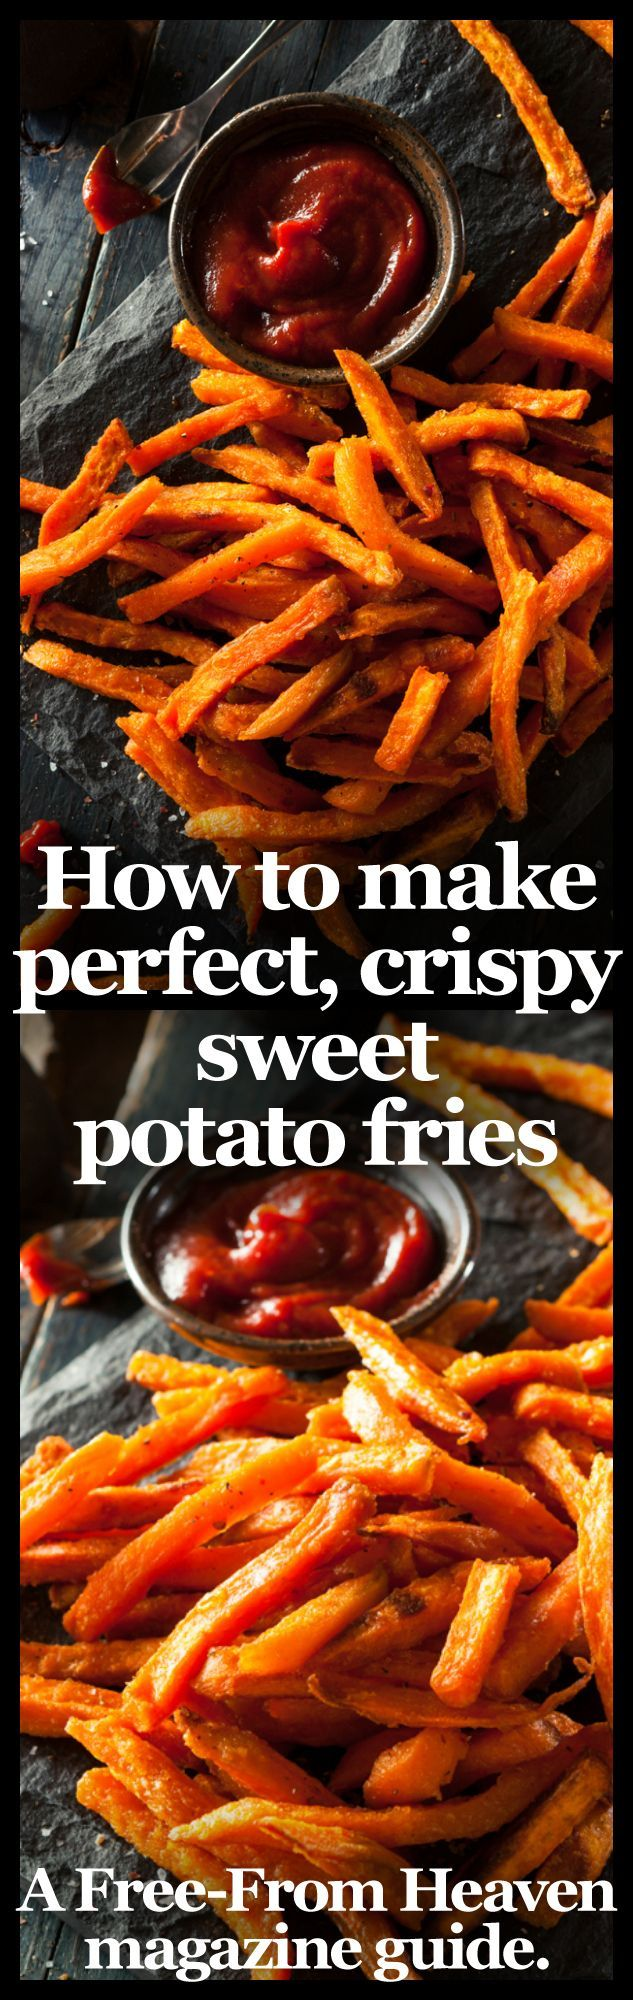 There's no denying that sweet potato fries are one of the tastiest ways to eat…